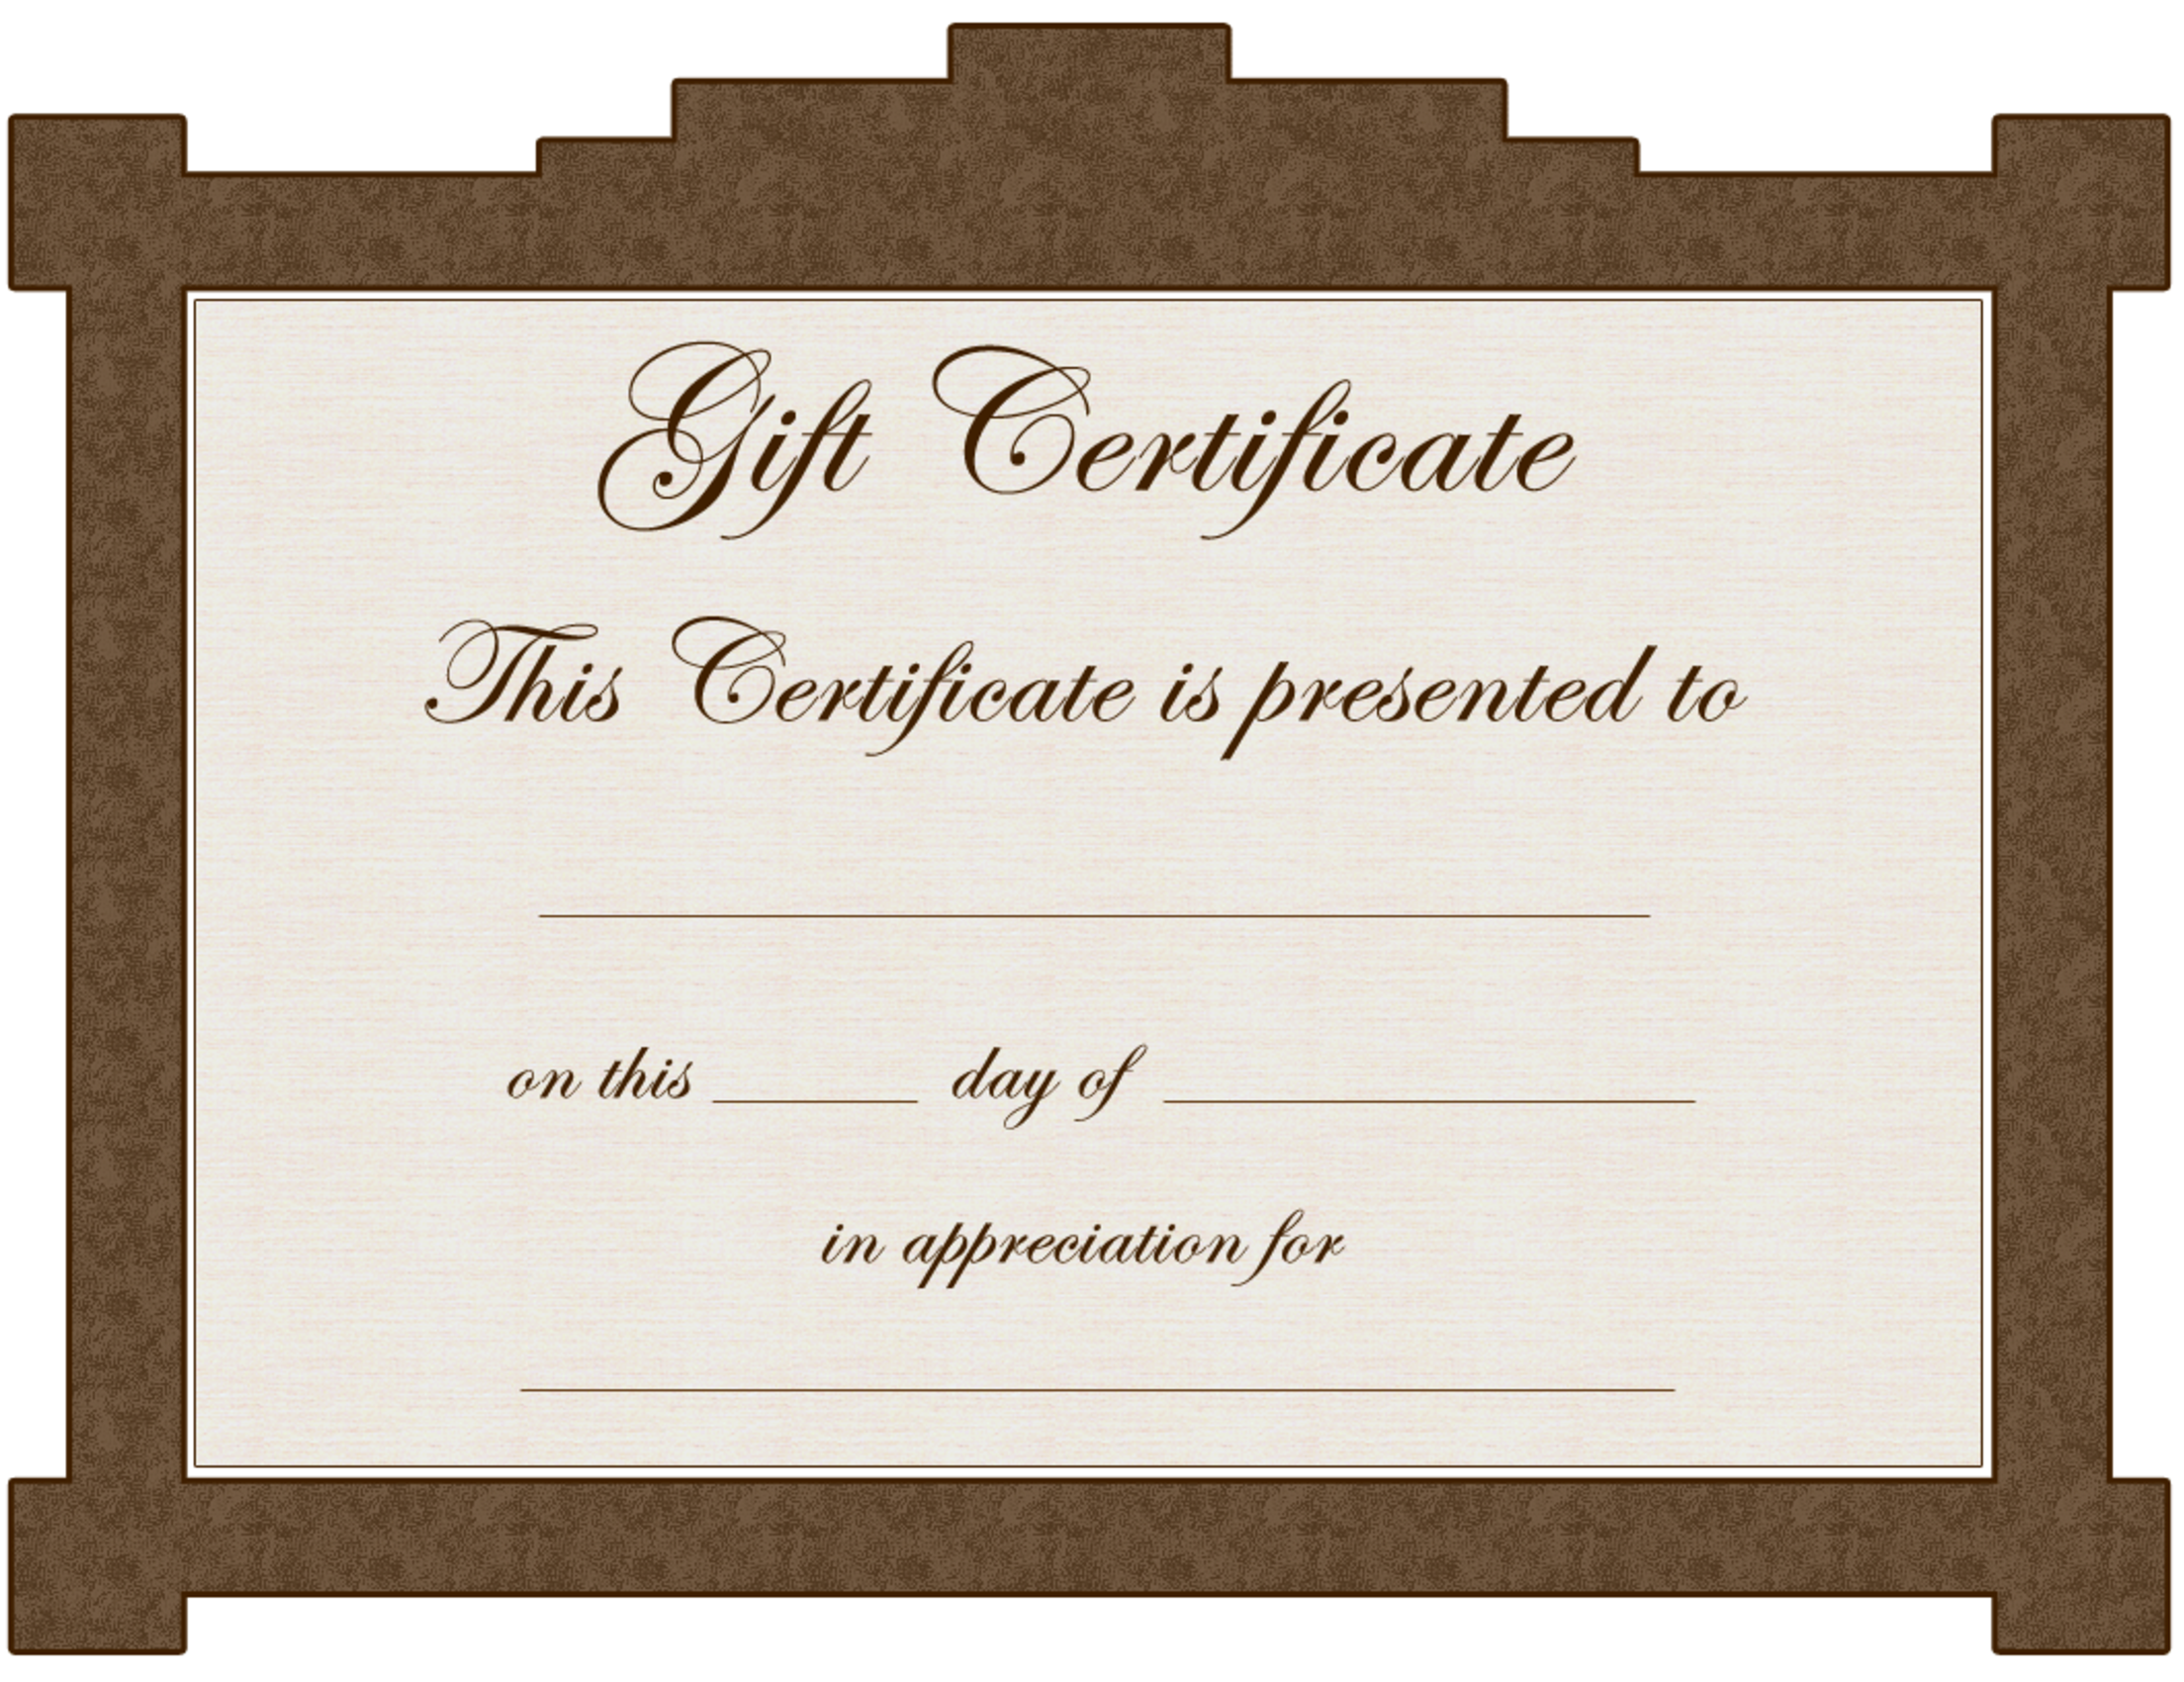 templates for gift certificates free downloads - gift certificate templates to print activity shelter